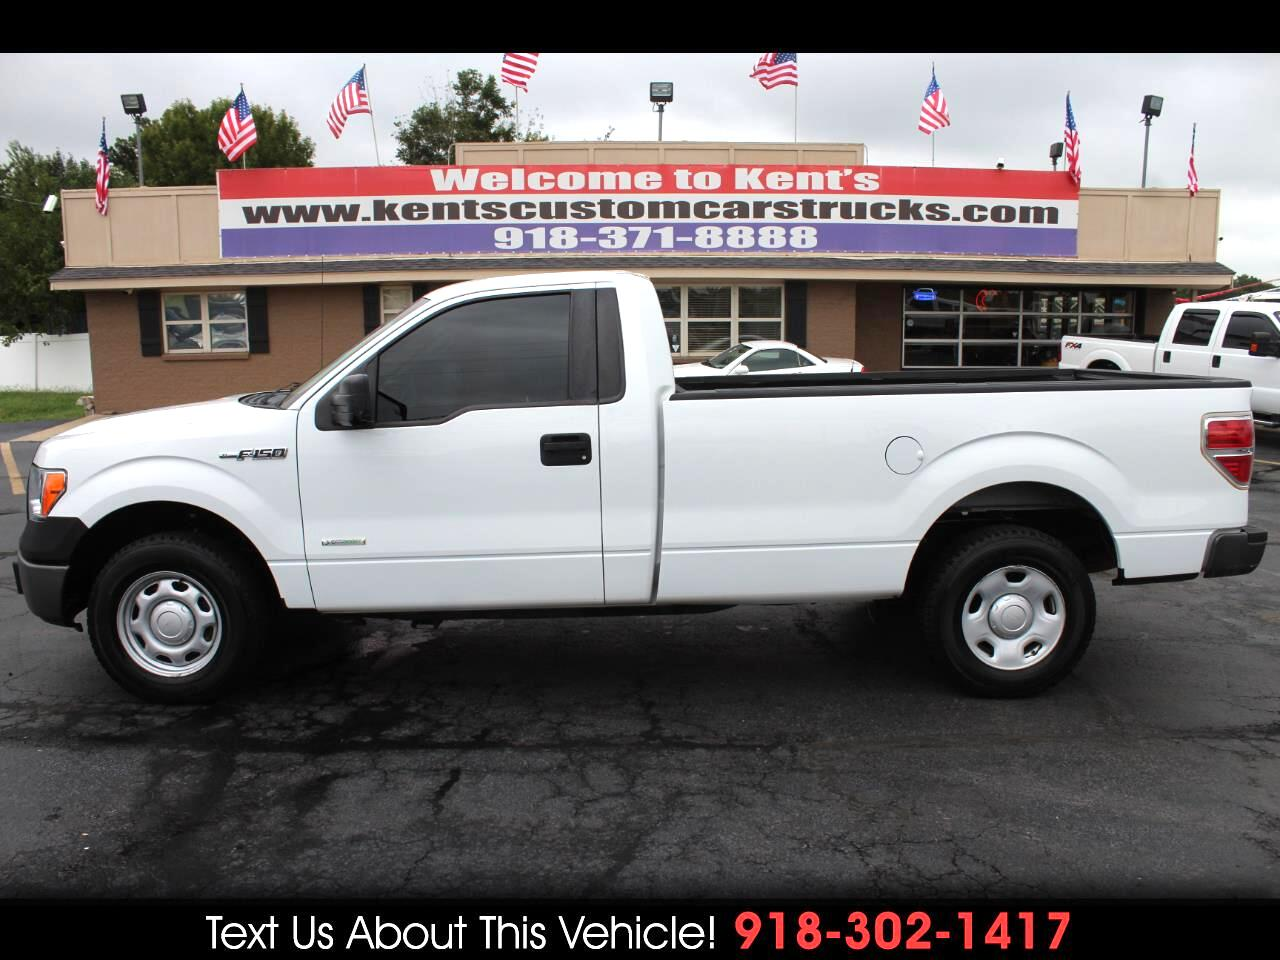 2012 Ford F-150 XL Regular Cab 2WD Long Bed